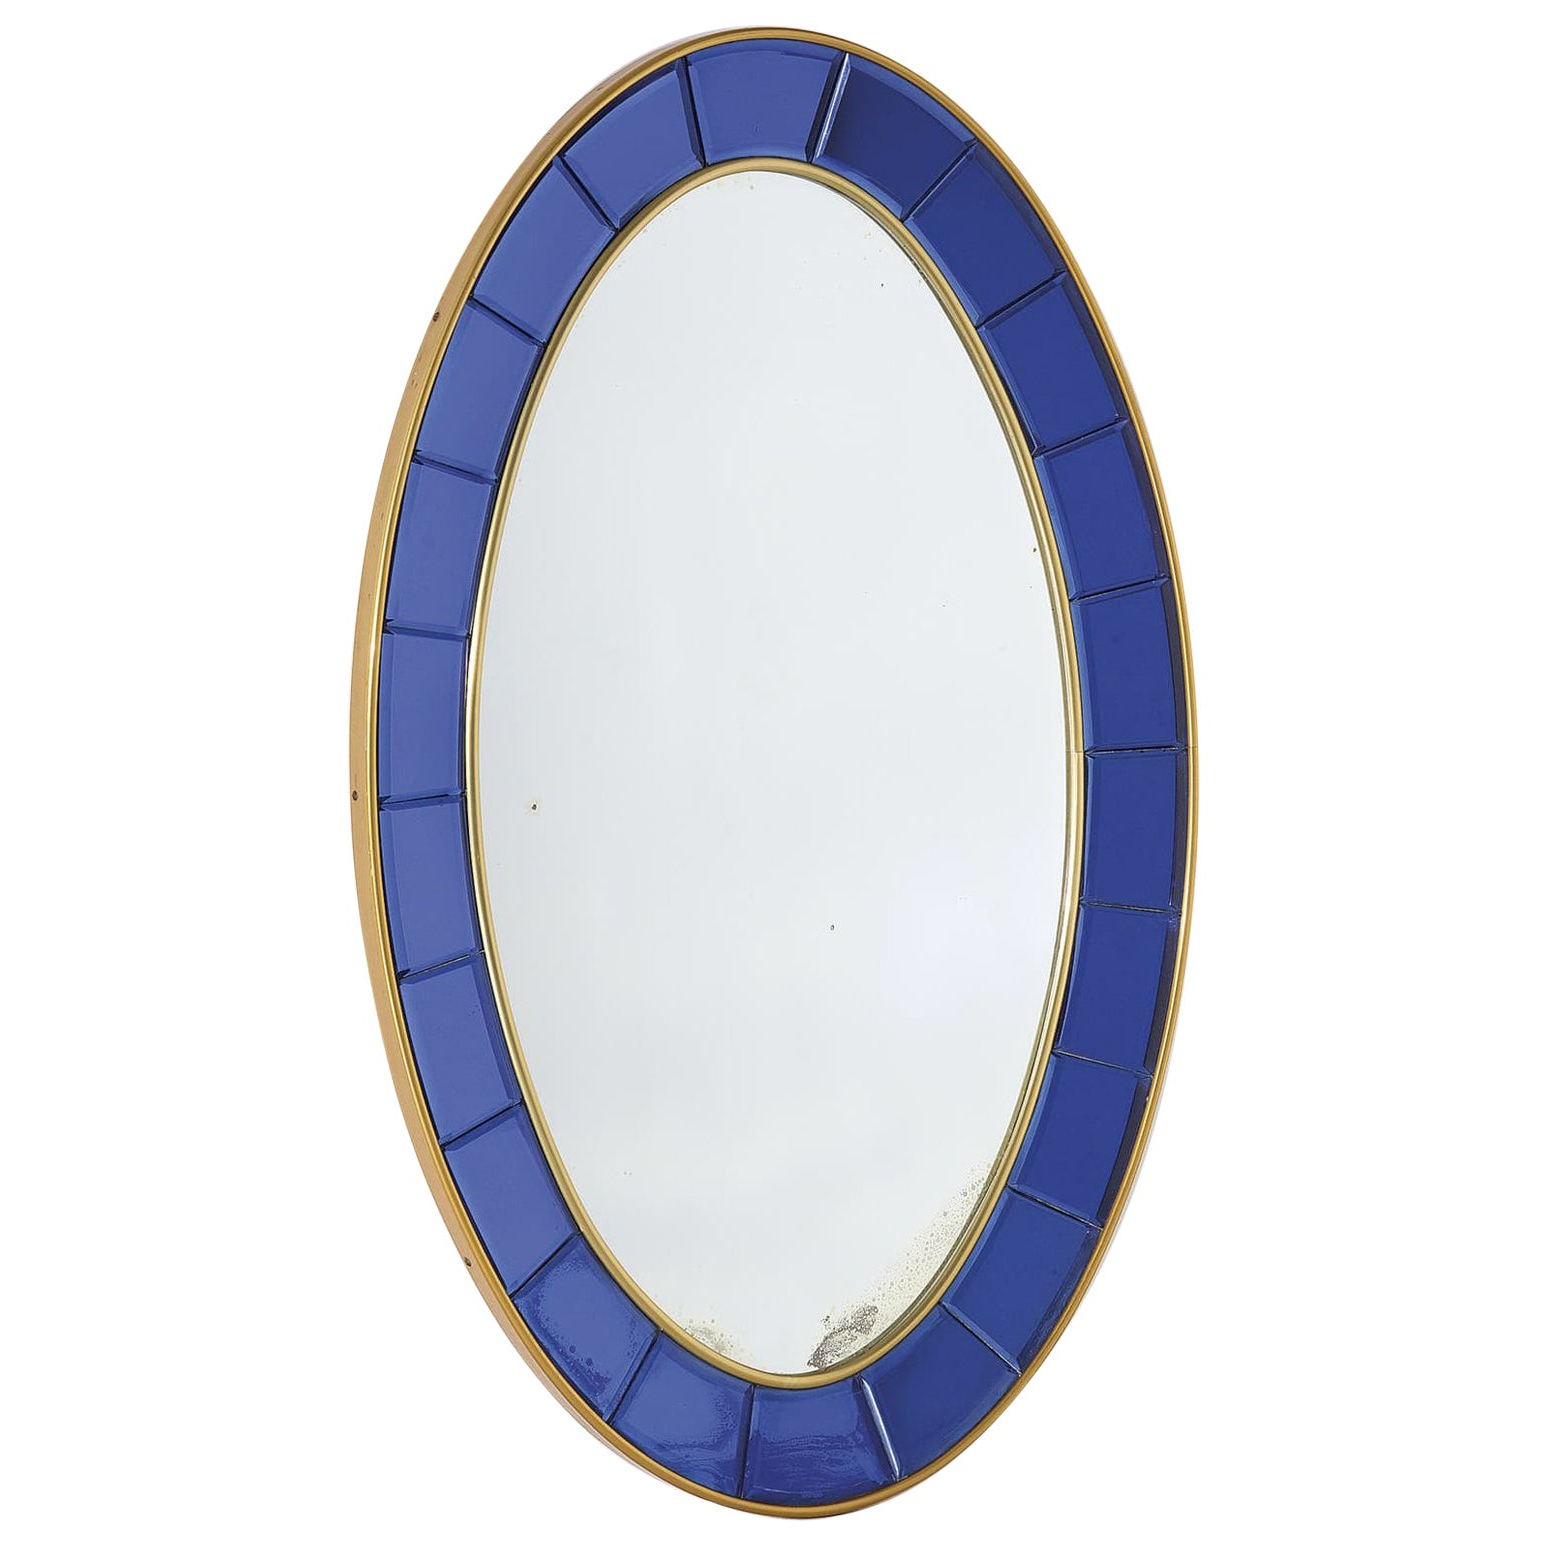 2019 Full Length Oval Wall Mirrors In Full Length 1960s Cristal Arte Blue Model 2727 Oval Wall Mirror, Italian (View 17 of 20)